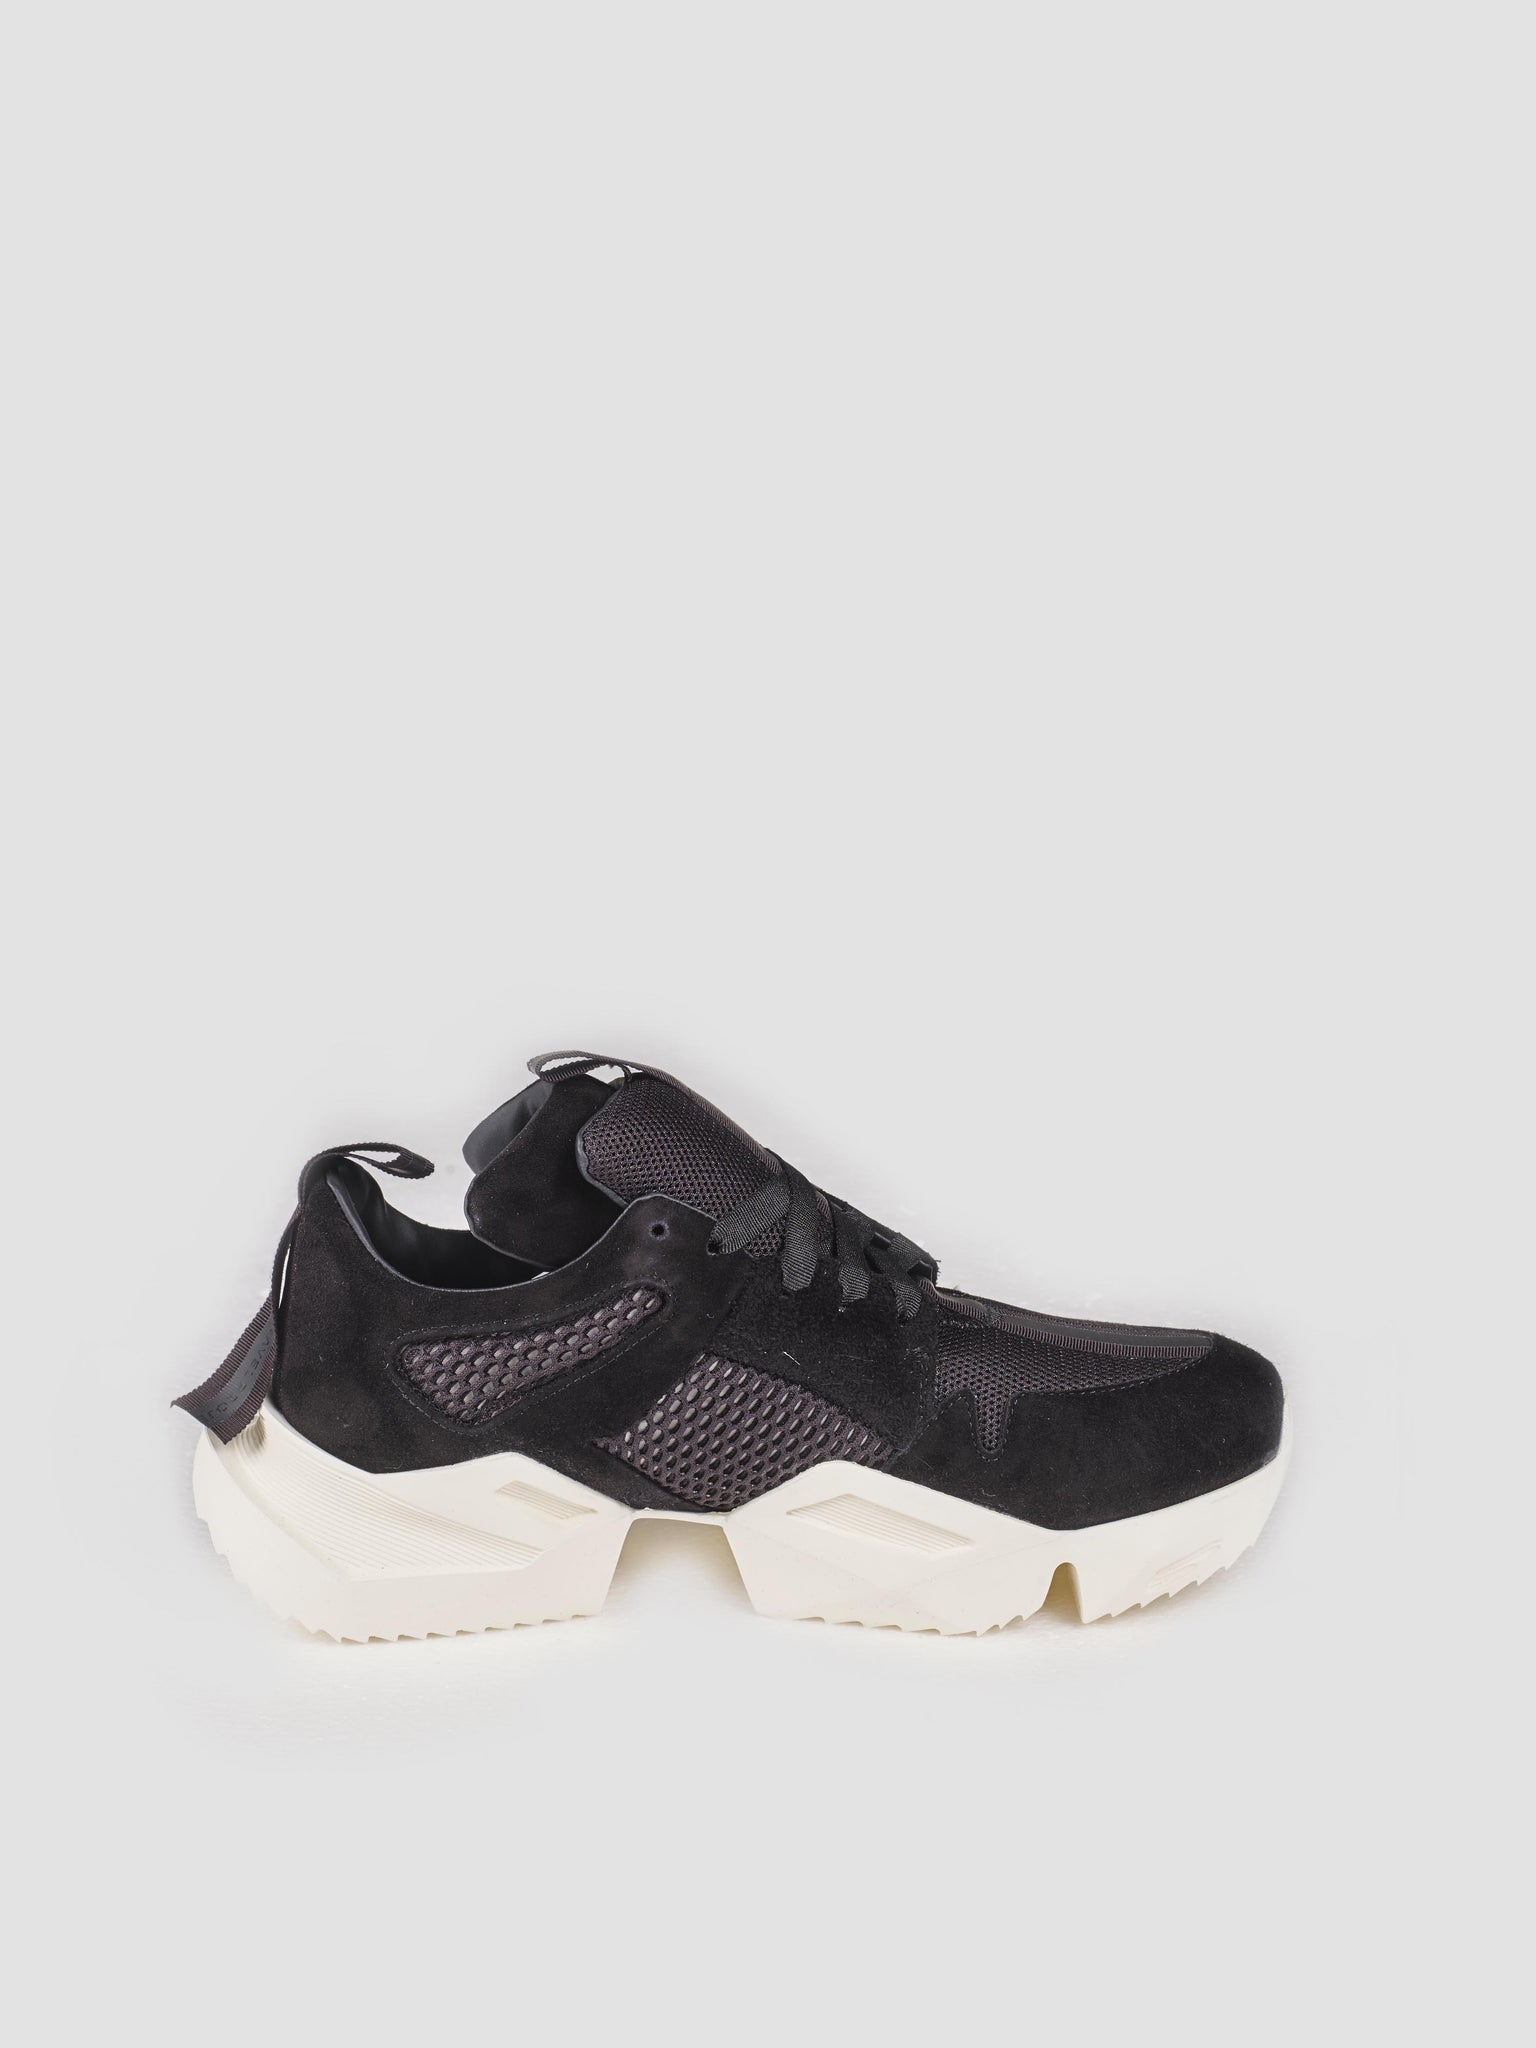 Unravel Black Low Sneaker with White Sole